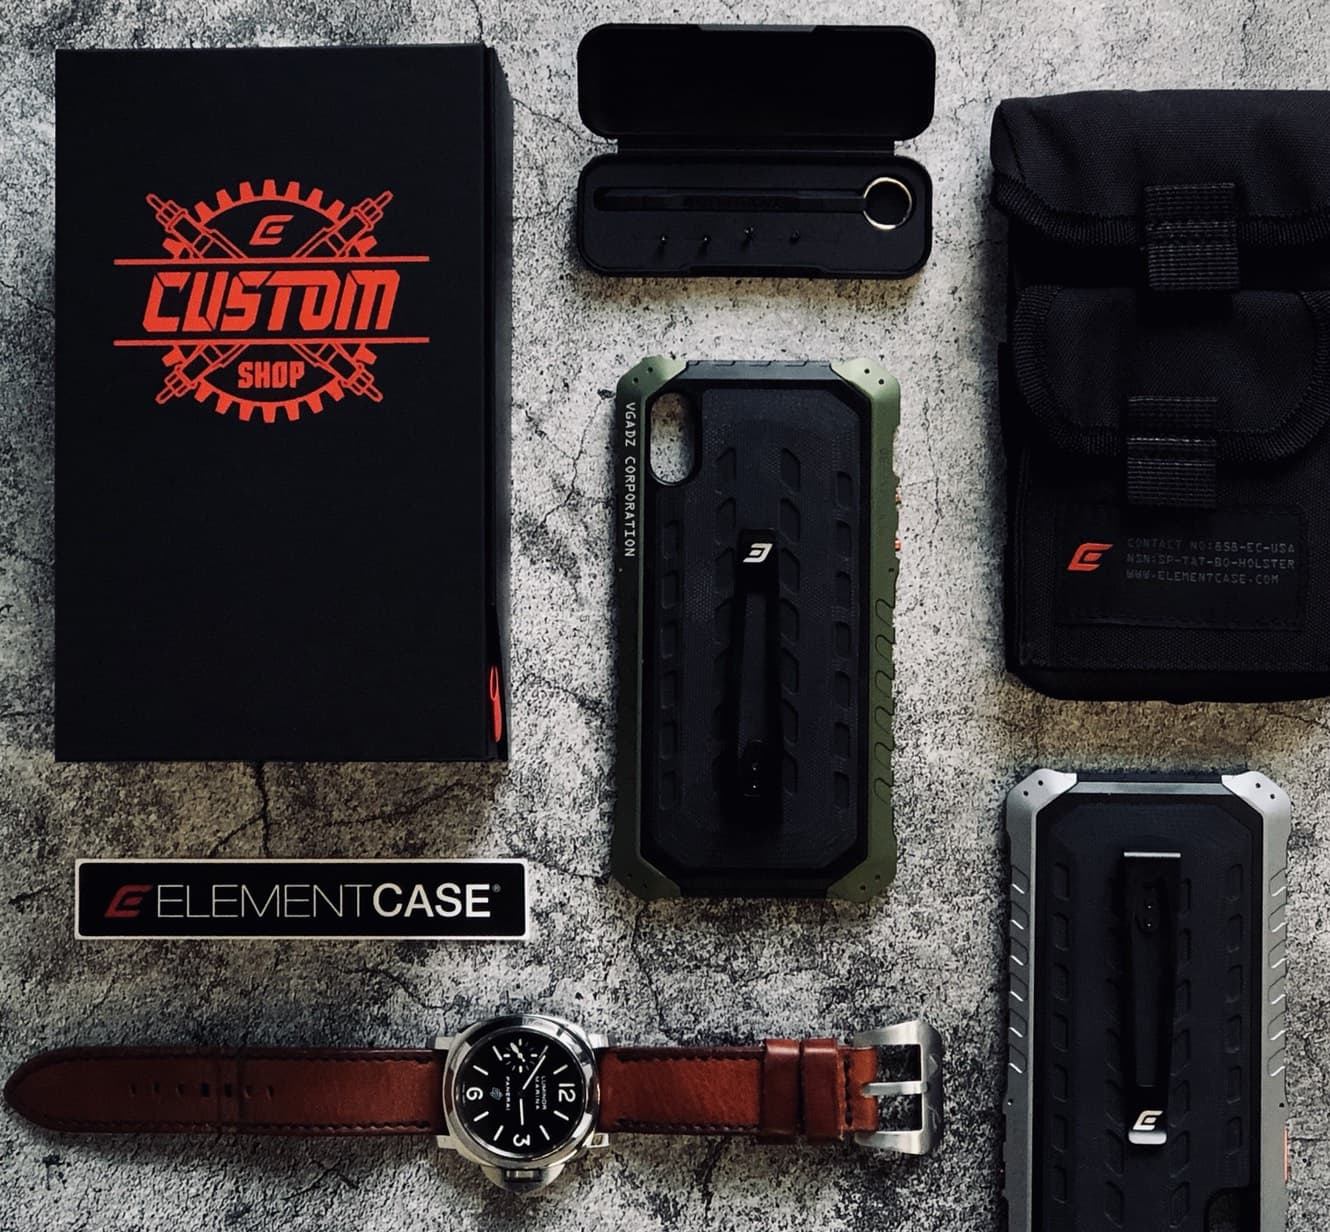 Elementcase Blackops Limited Edition 11